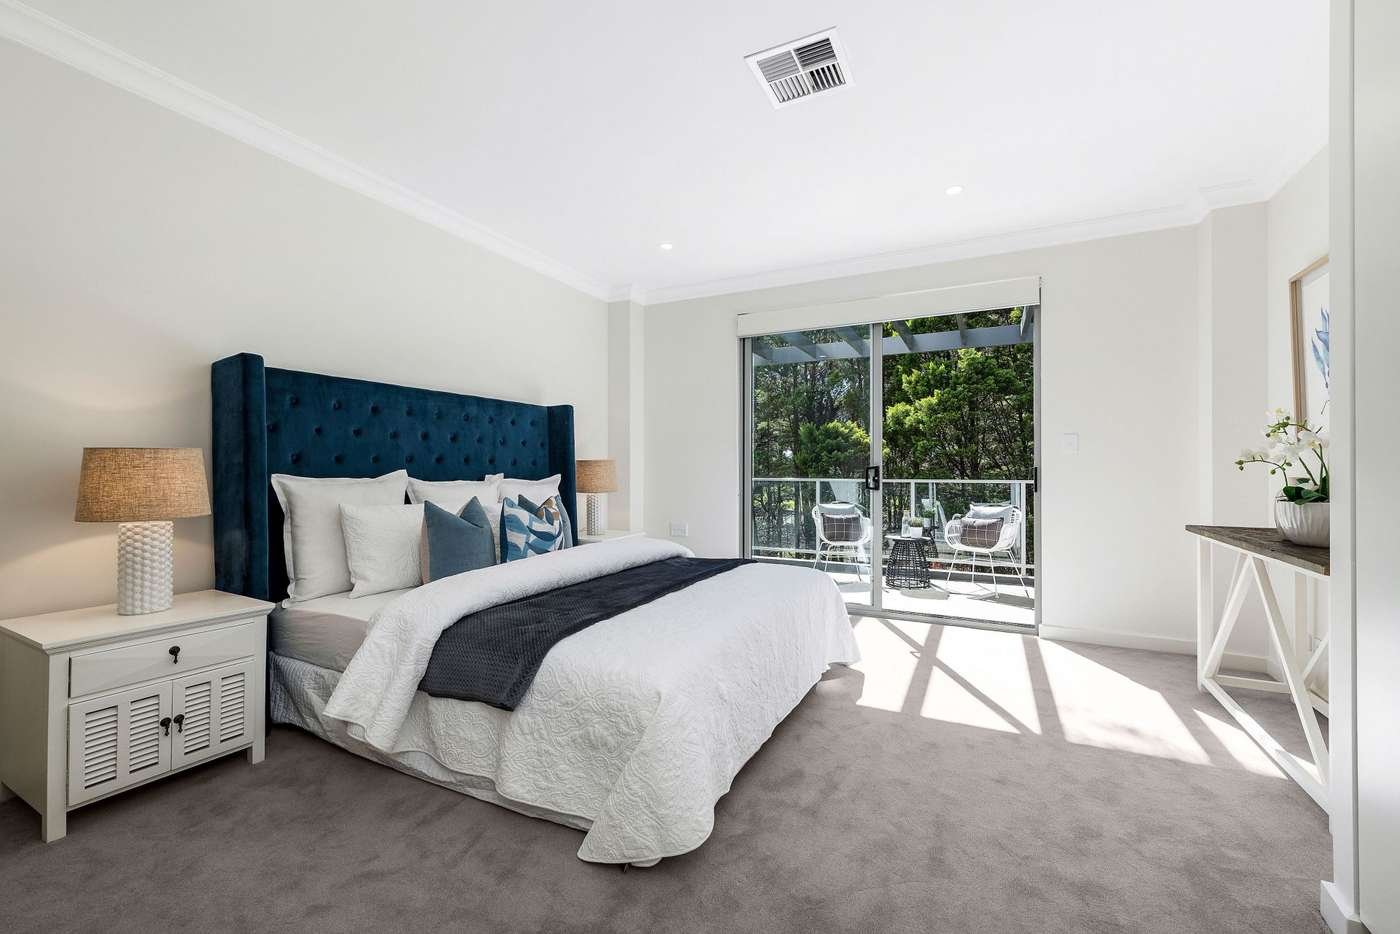 Fifth view of Homely townhouse listing, 10-1 10-12 Newhaven Place, St Ives NSW 2075